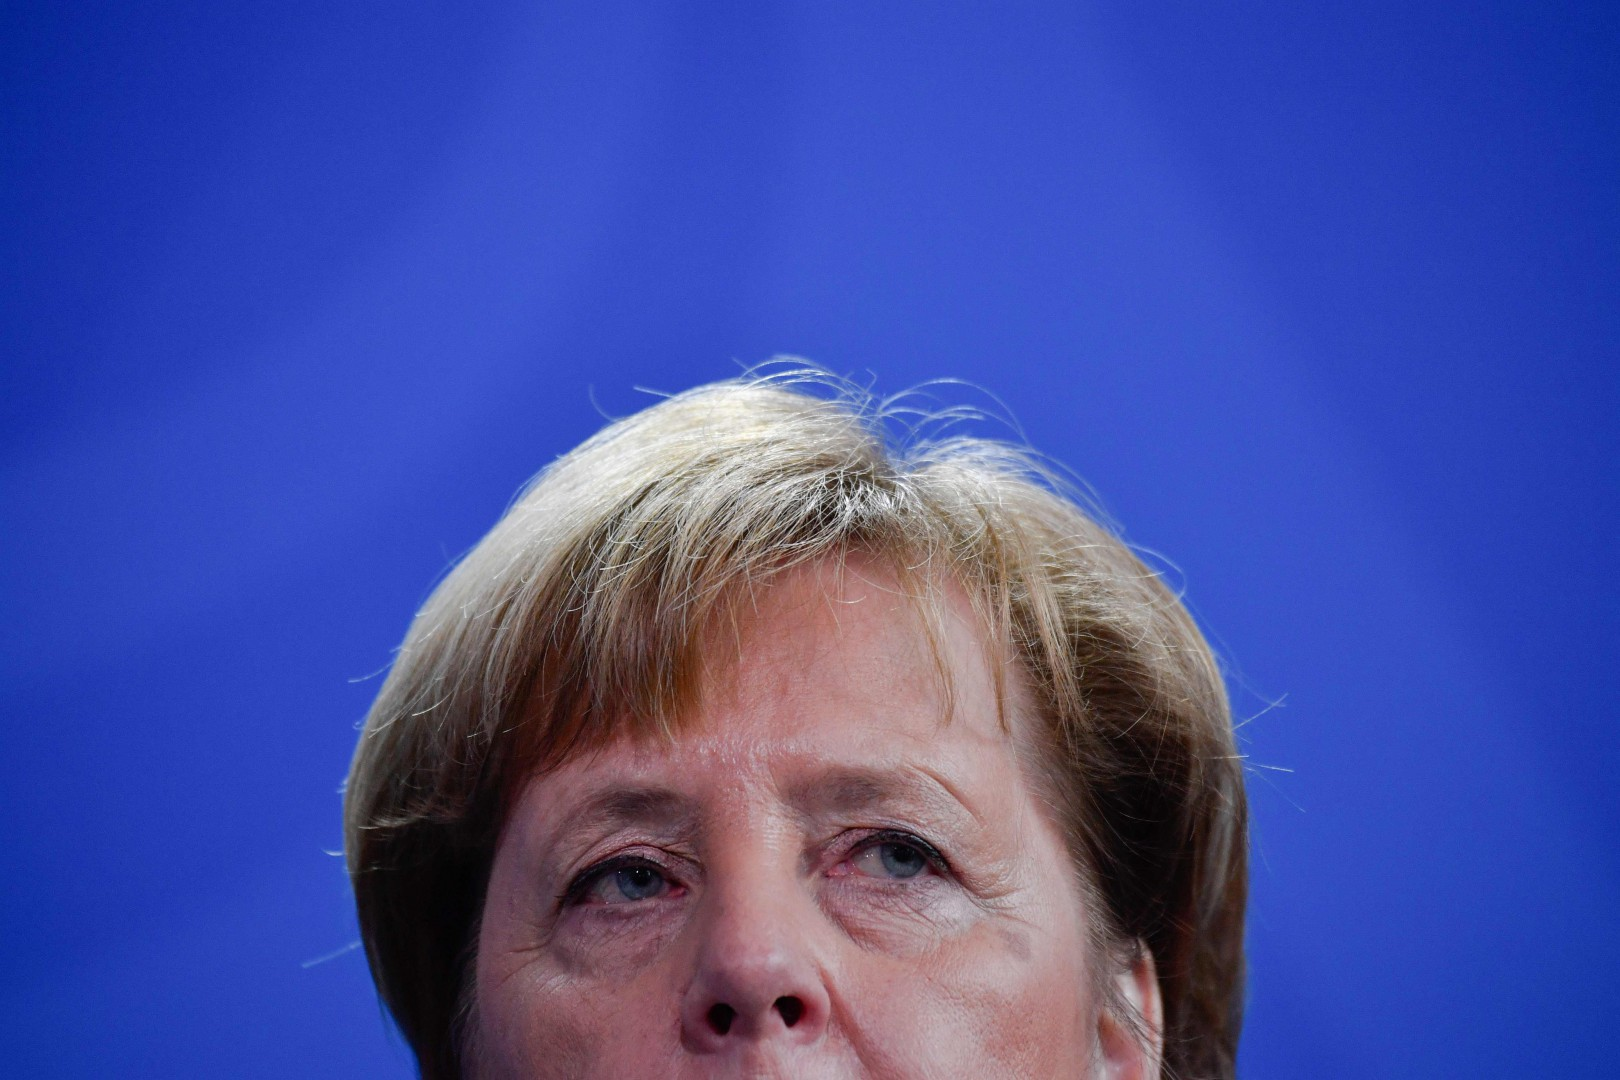 German Chancellor Angela Merkel looks on during a joint press conference with the Armenian Prime Minister after a meeting at the chancellery in Berlin, on February 1, 2019 (Photo by John MACDOUGALL / AFP)